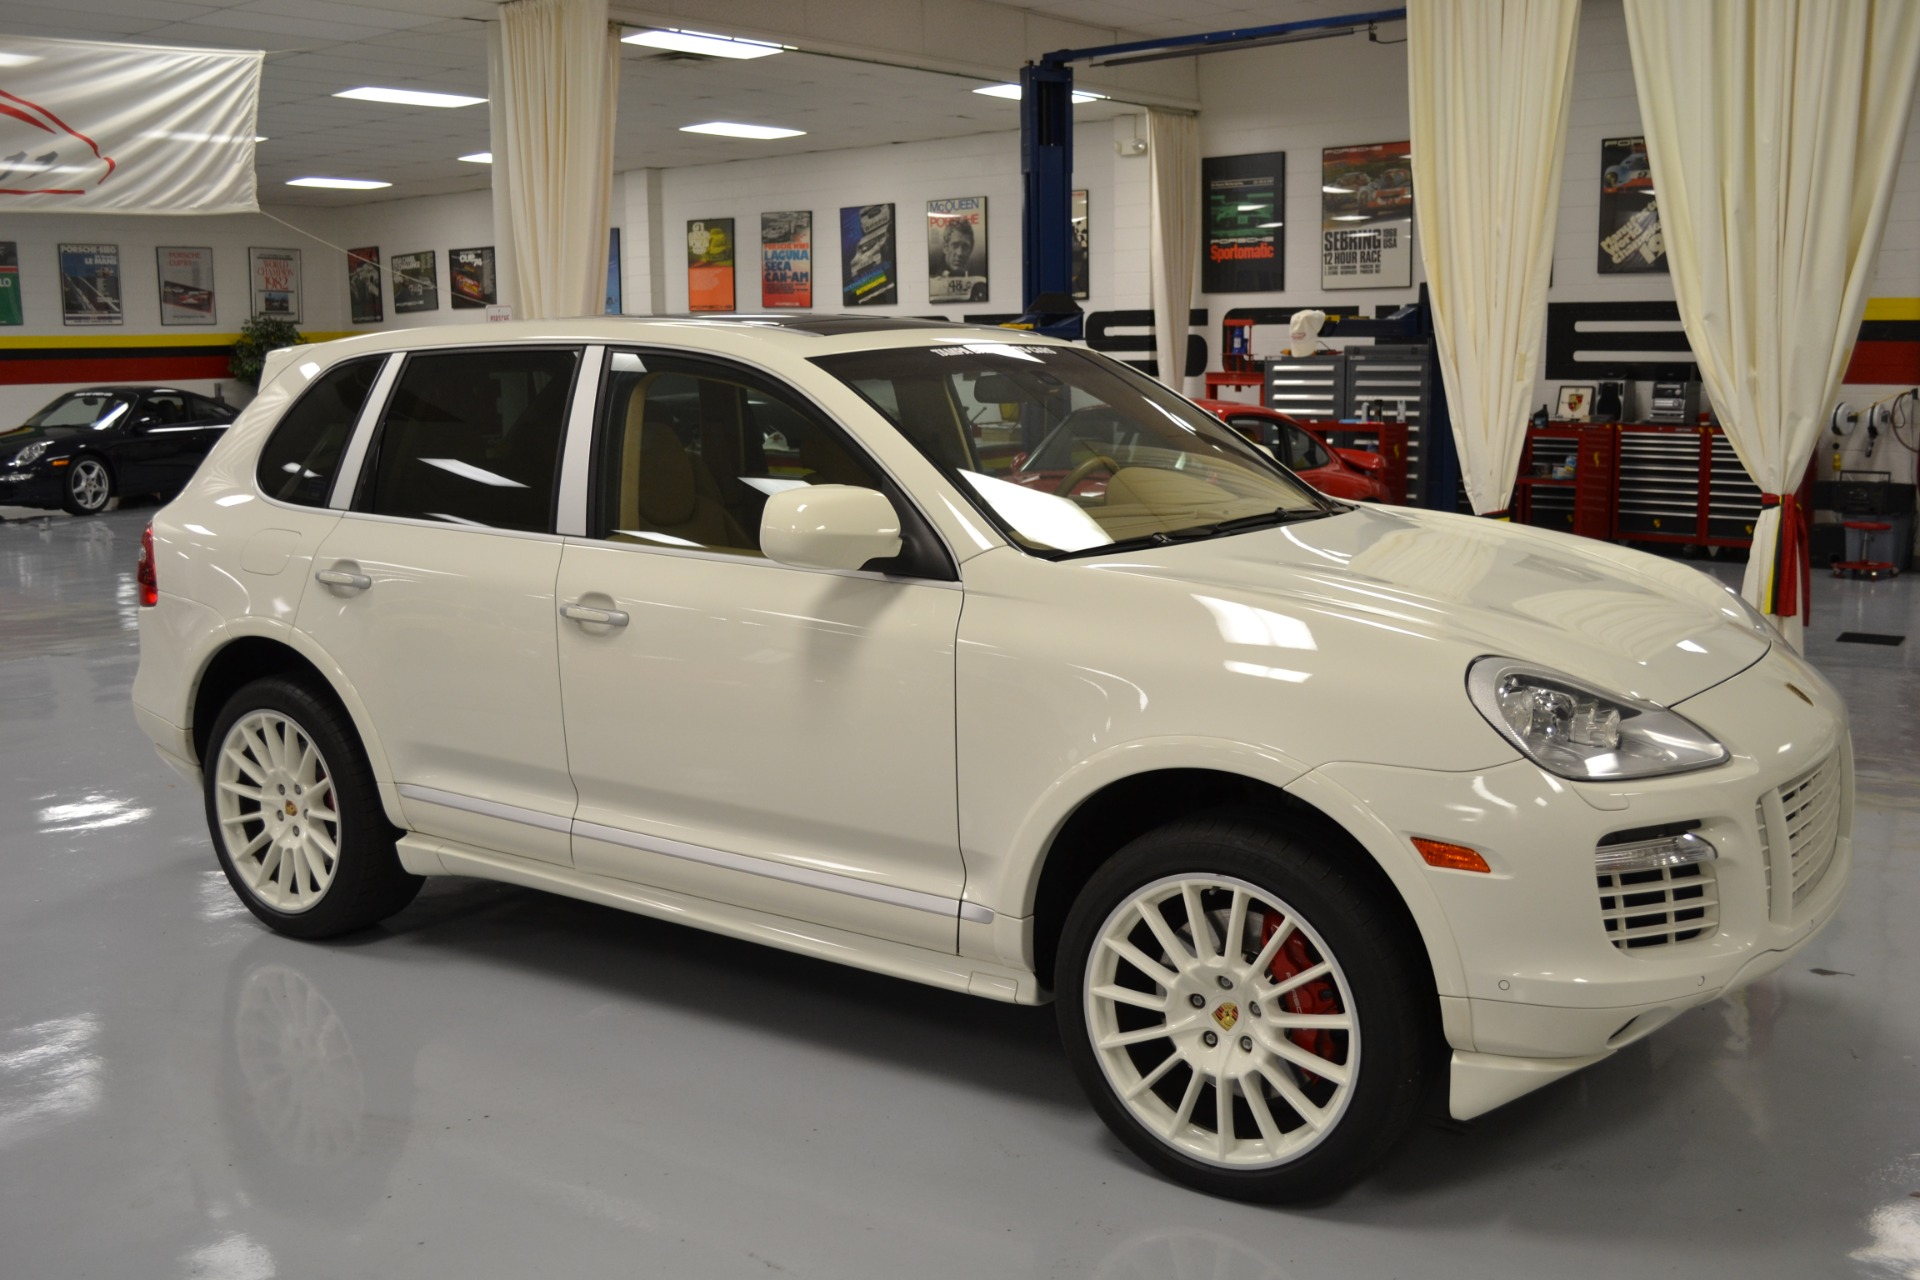 2009 porsche cayenne turbo s for sale in pinellas park fl 1148 tampa bay sports cars. Black Bedroom Furniture Sets. Home Design Ideas